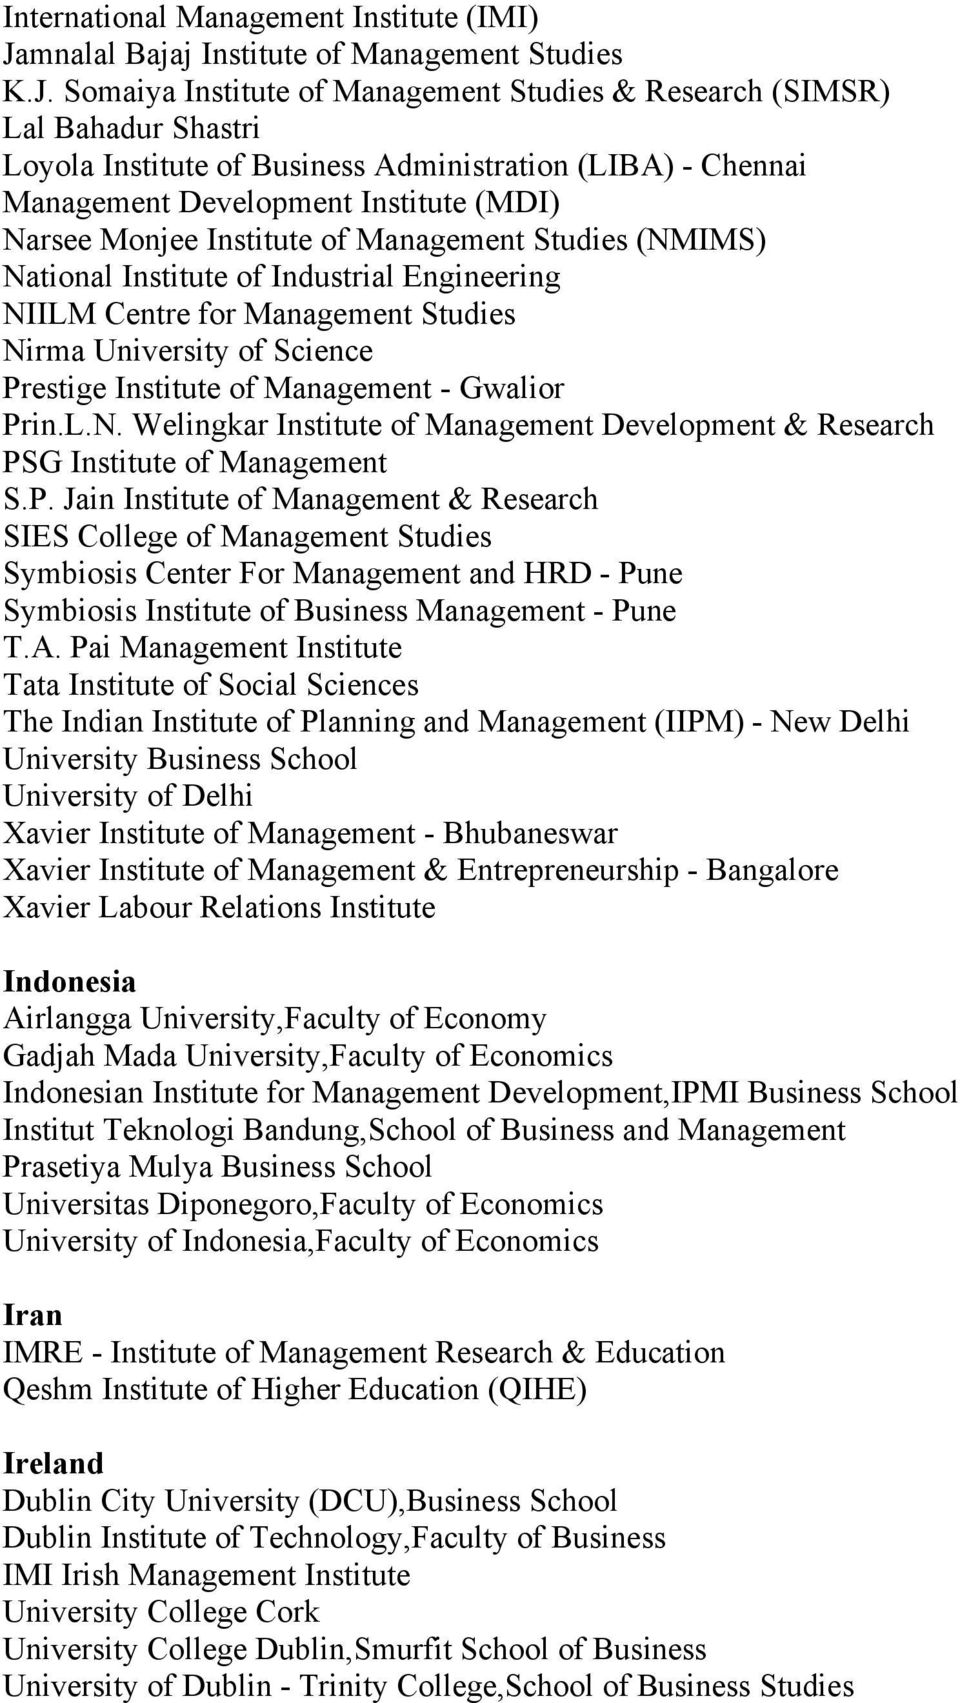 Somaiya Institute of Management Studies & Research (SIMSR) Lal Bahadur Shastri Loyola Institute of Business Administration (LIBA) - Chennai Management Development Institute (MDI) Narsee Monjee